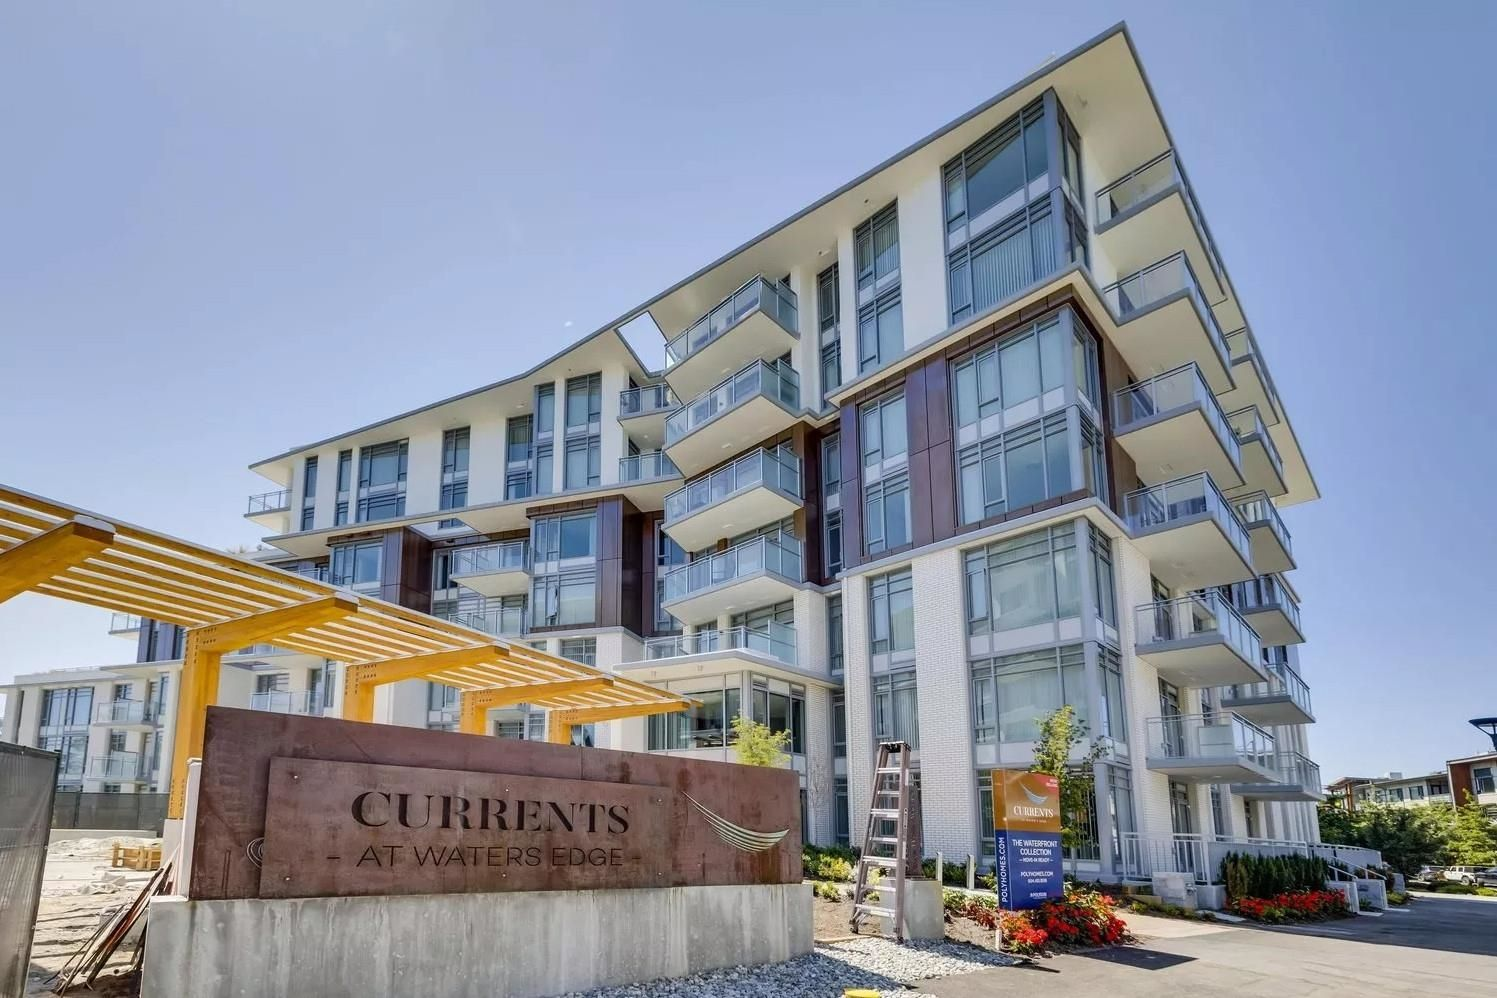 """Main Photo: 504 3188 RIVERWALK Avenue in Vancouver: South Marine Condo for sale in """"CURRENTS AT WATER'S EDGE"""" (Vancouver East)  : MLS®# R2614610"""